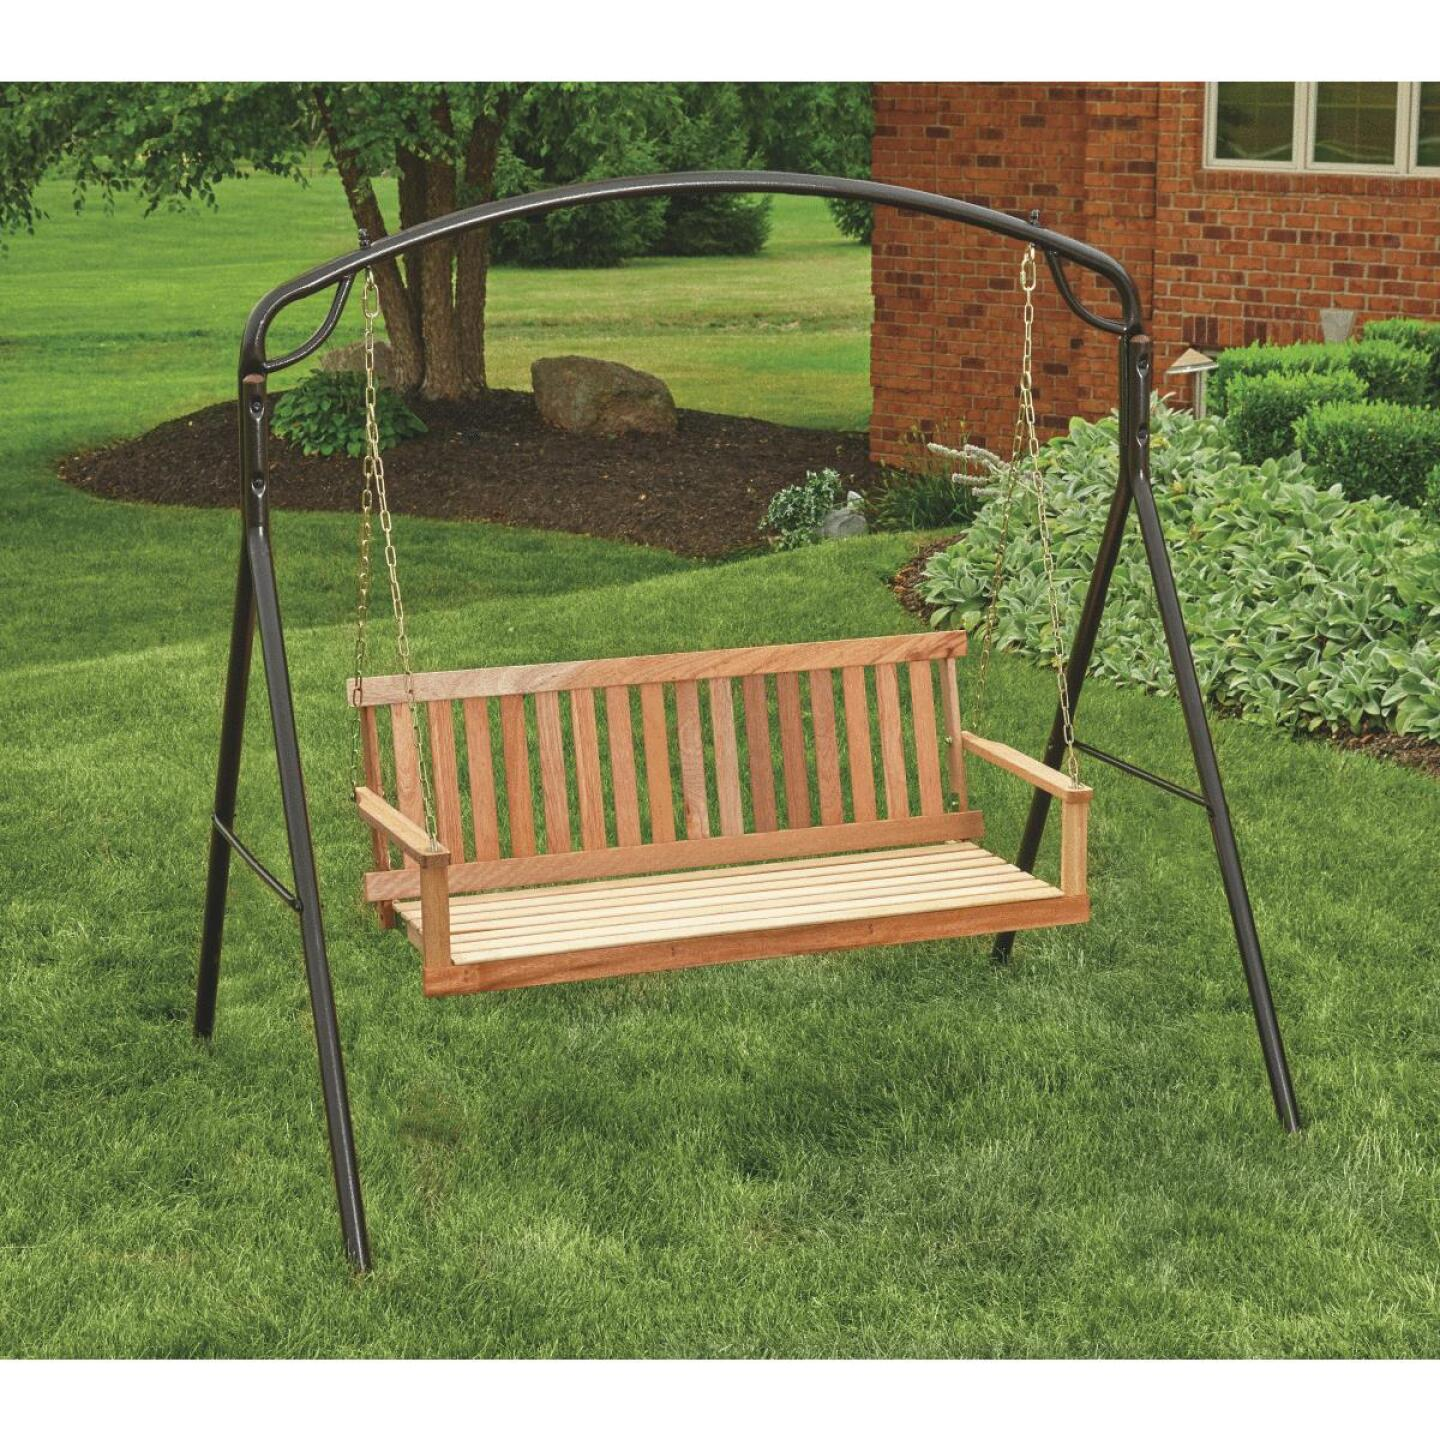 Jack Post Jennings 48 In. W. x 17.5 In. H. x 21-3/4 In. D. Natural Cypress Porch Swing Image 2